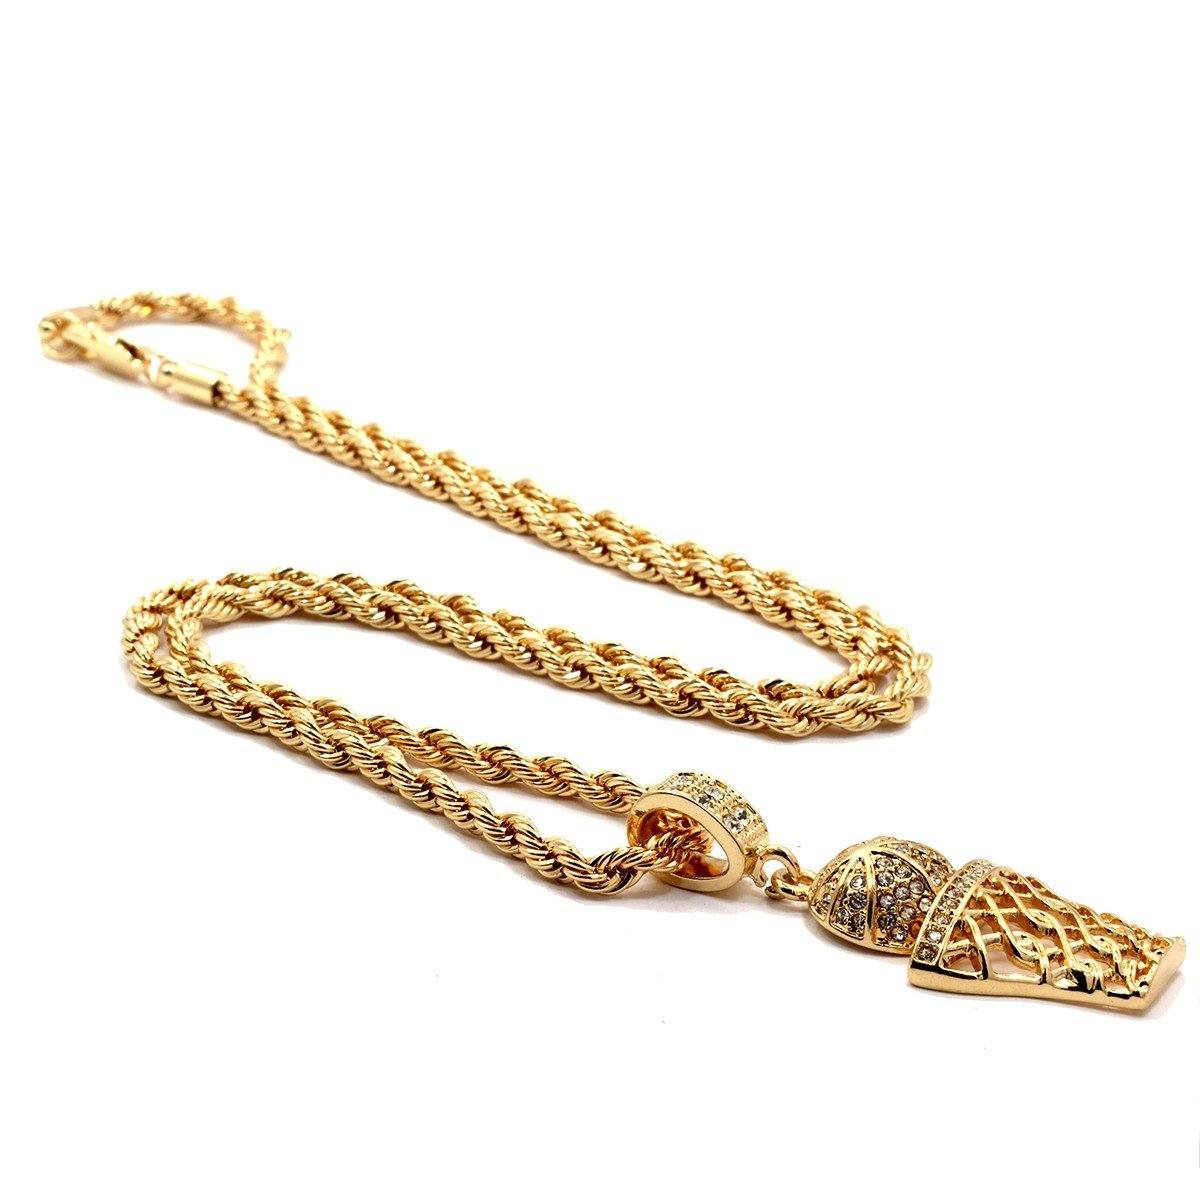 BASKET BALL PENDANT WITH GOLD ROPE CHAIN